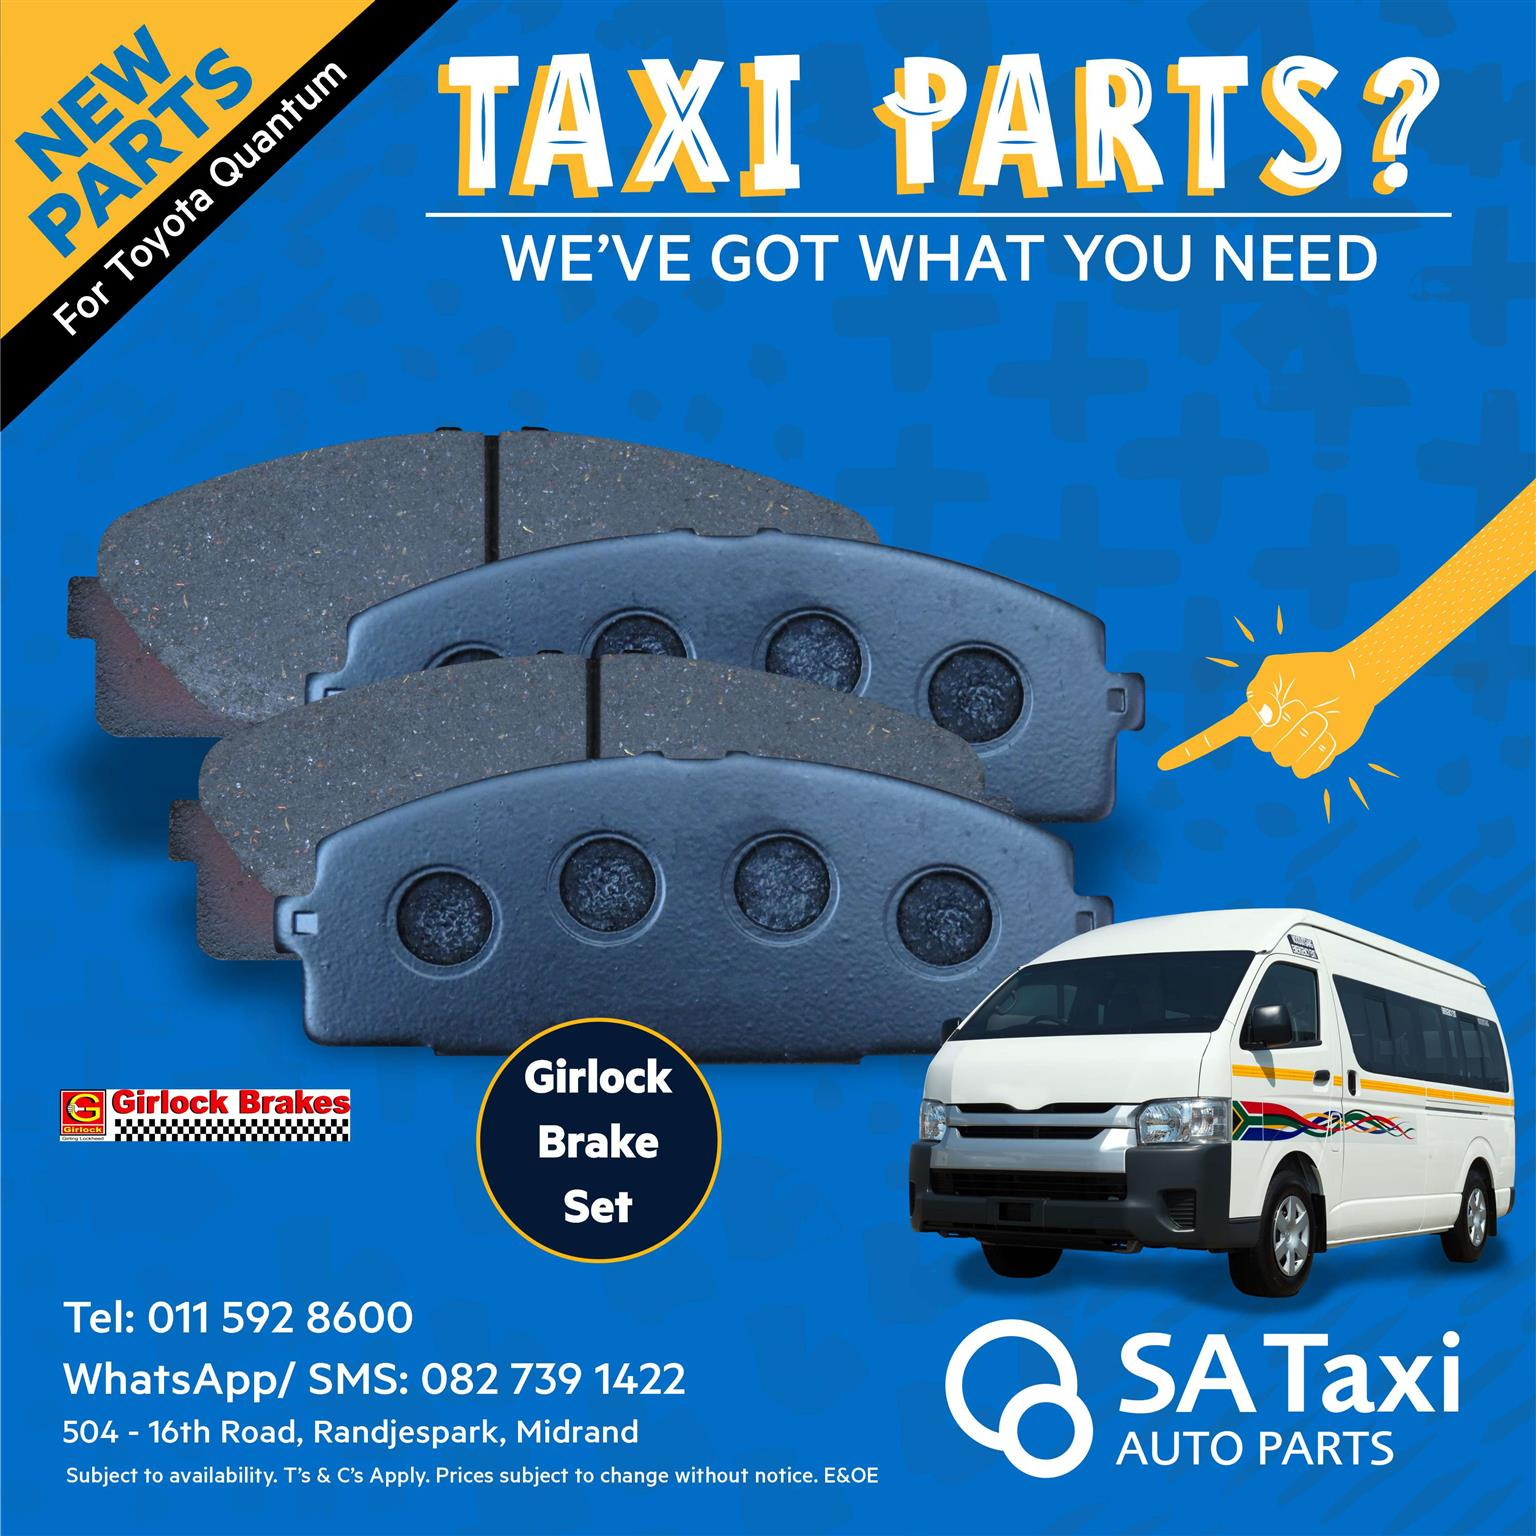 New Girlock Brake Pad set suitable for Toyota Quantum - SA Taxi Auto Parts Quality New Taxi Spares